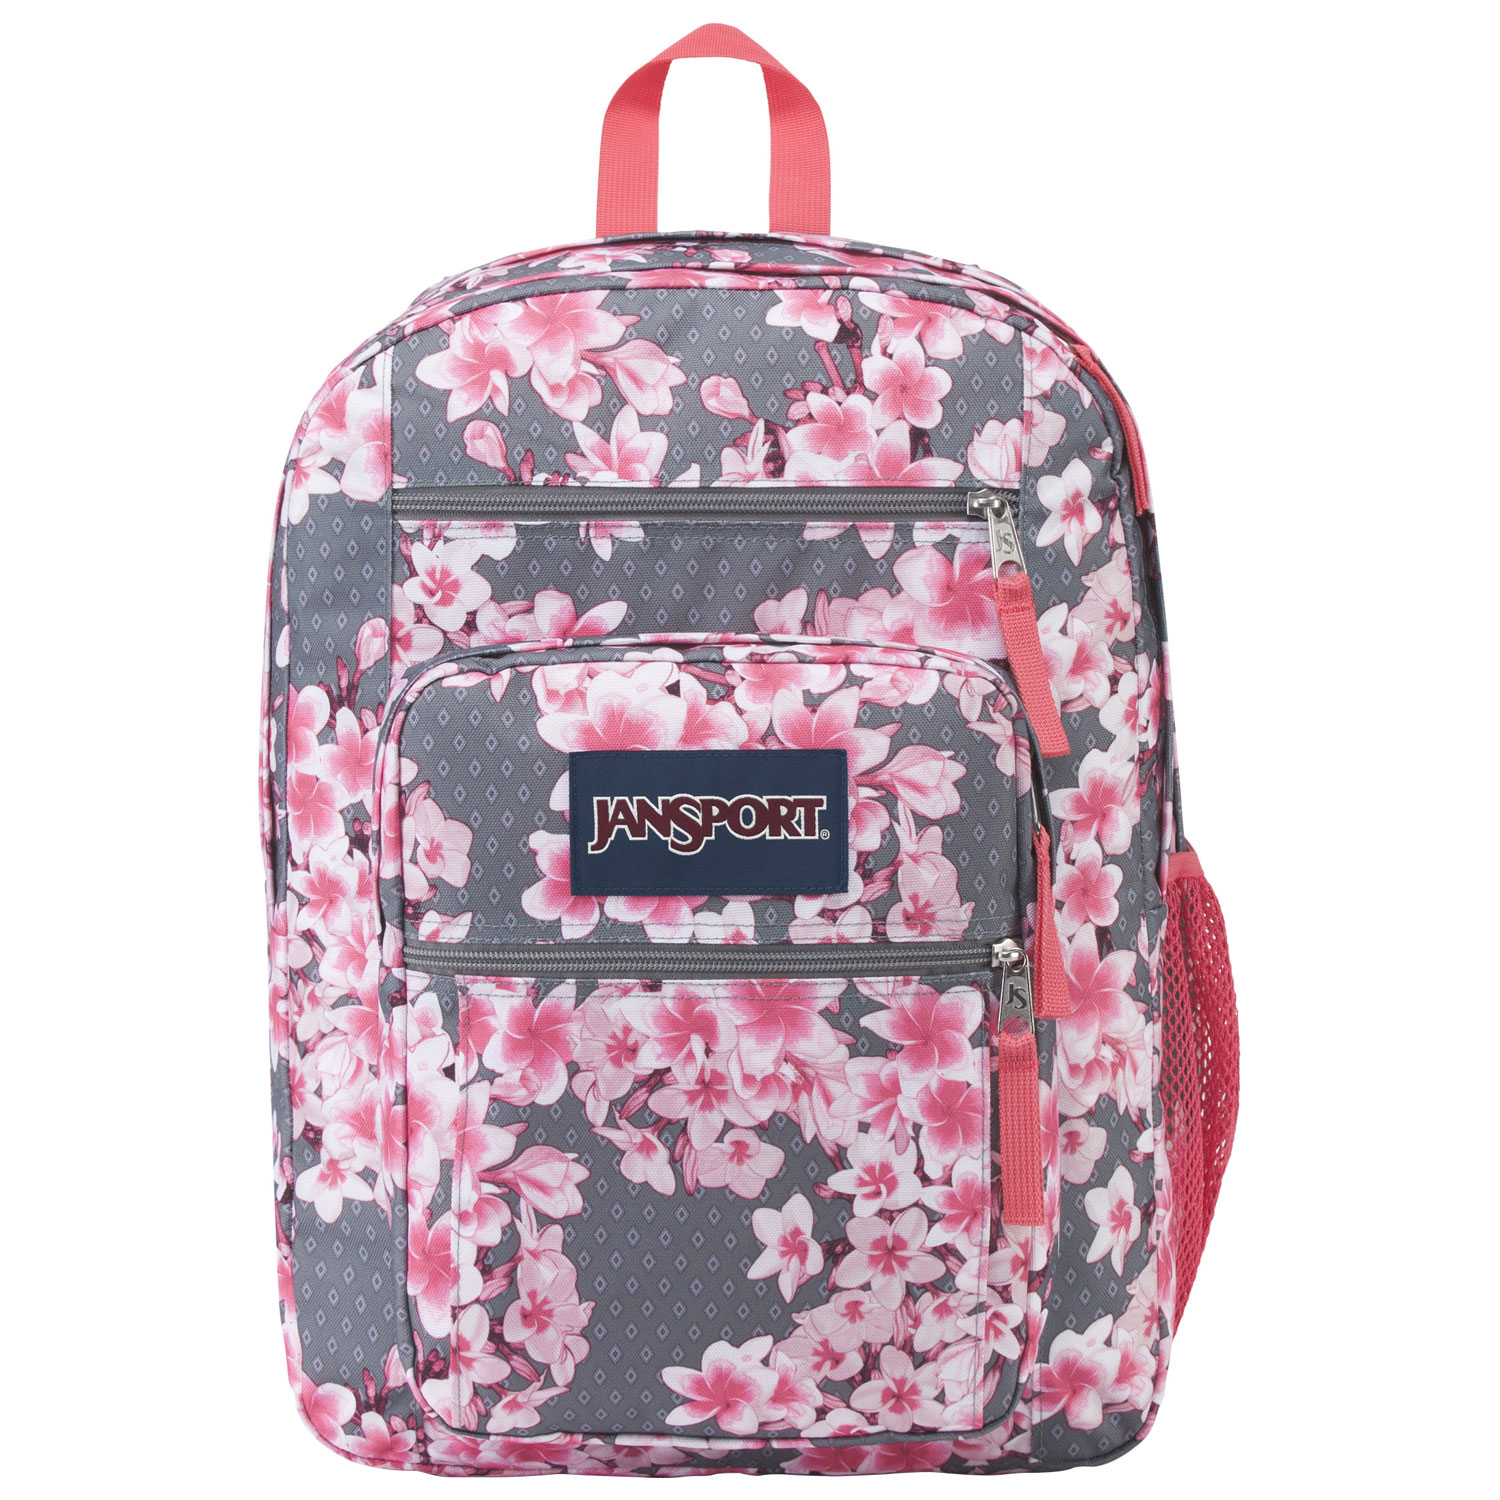 9cf1d0d468d4 Who Sells Jansport Backpacks In Canada- Fenix Toulouse Handball